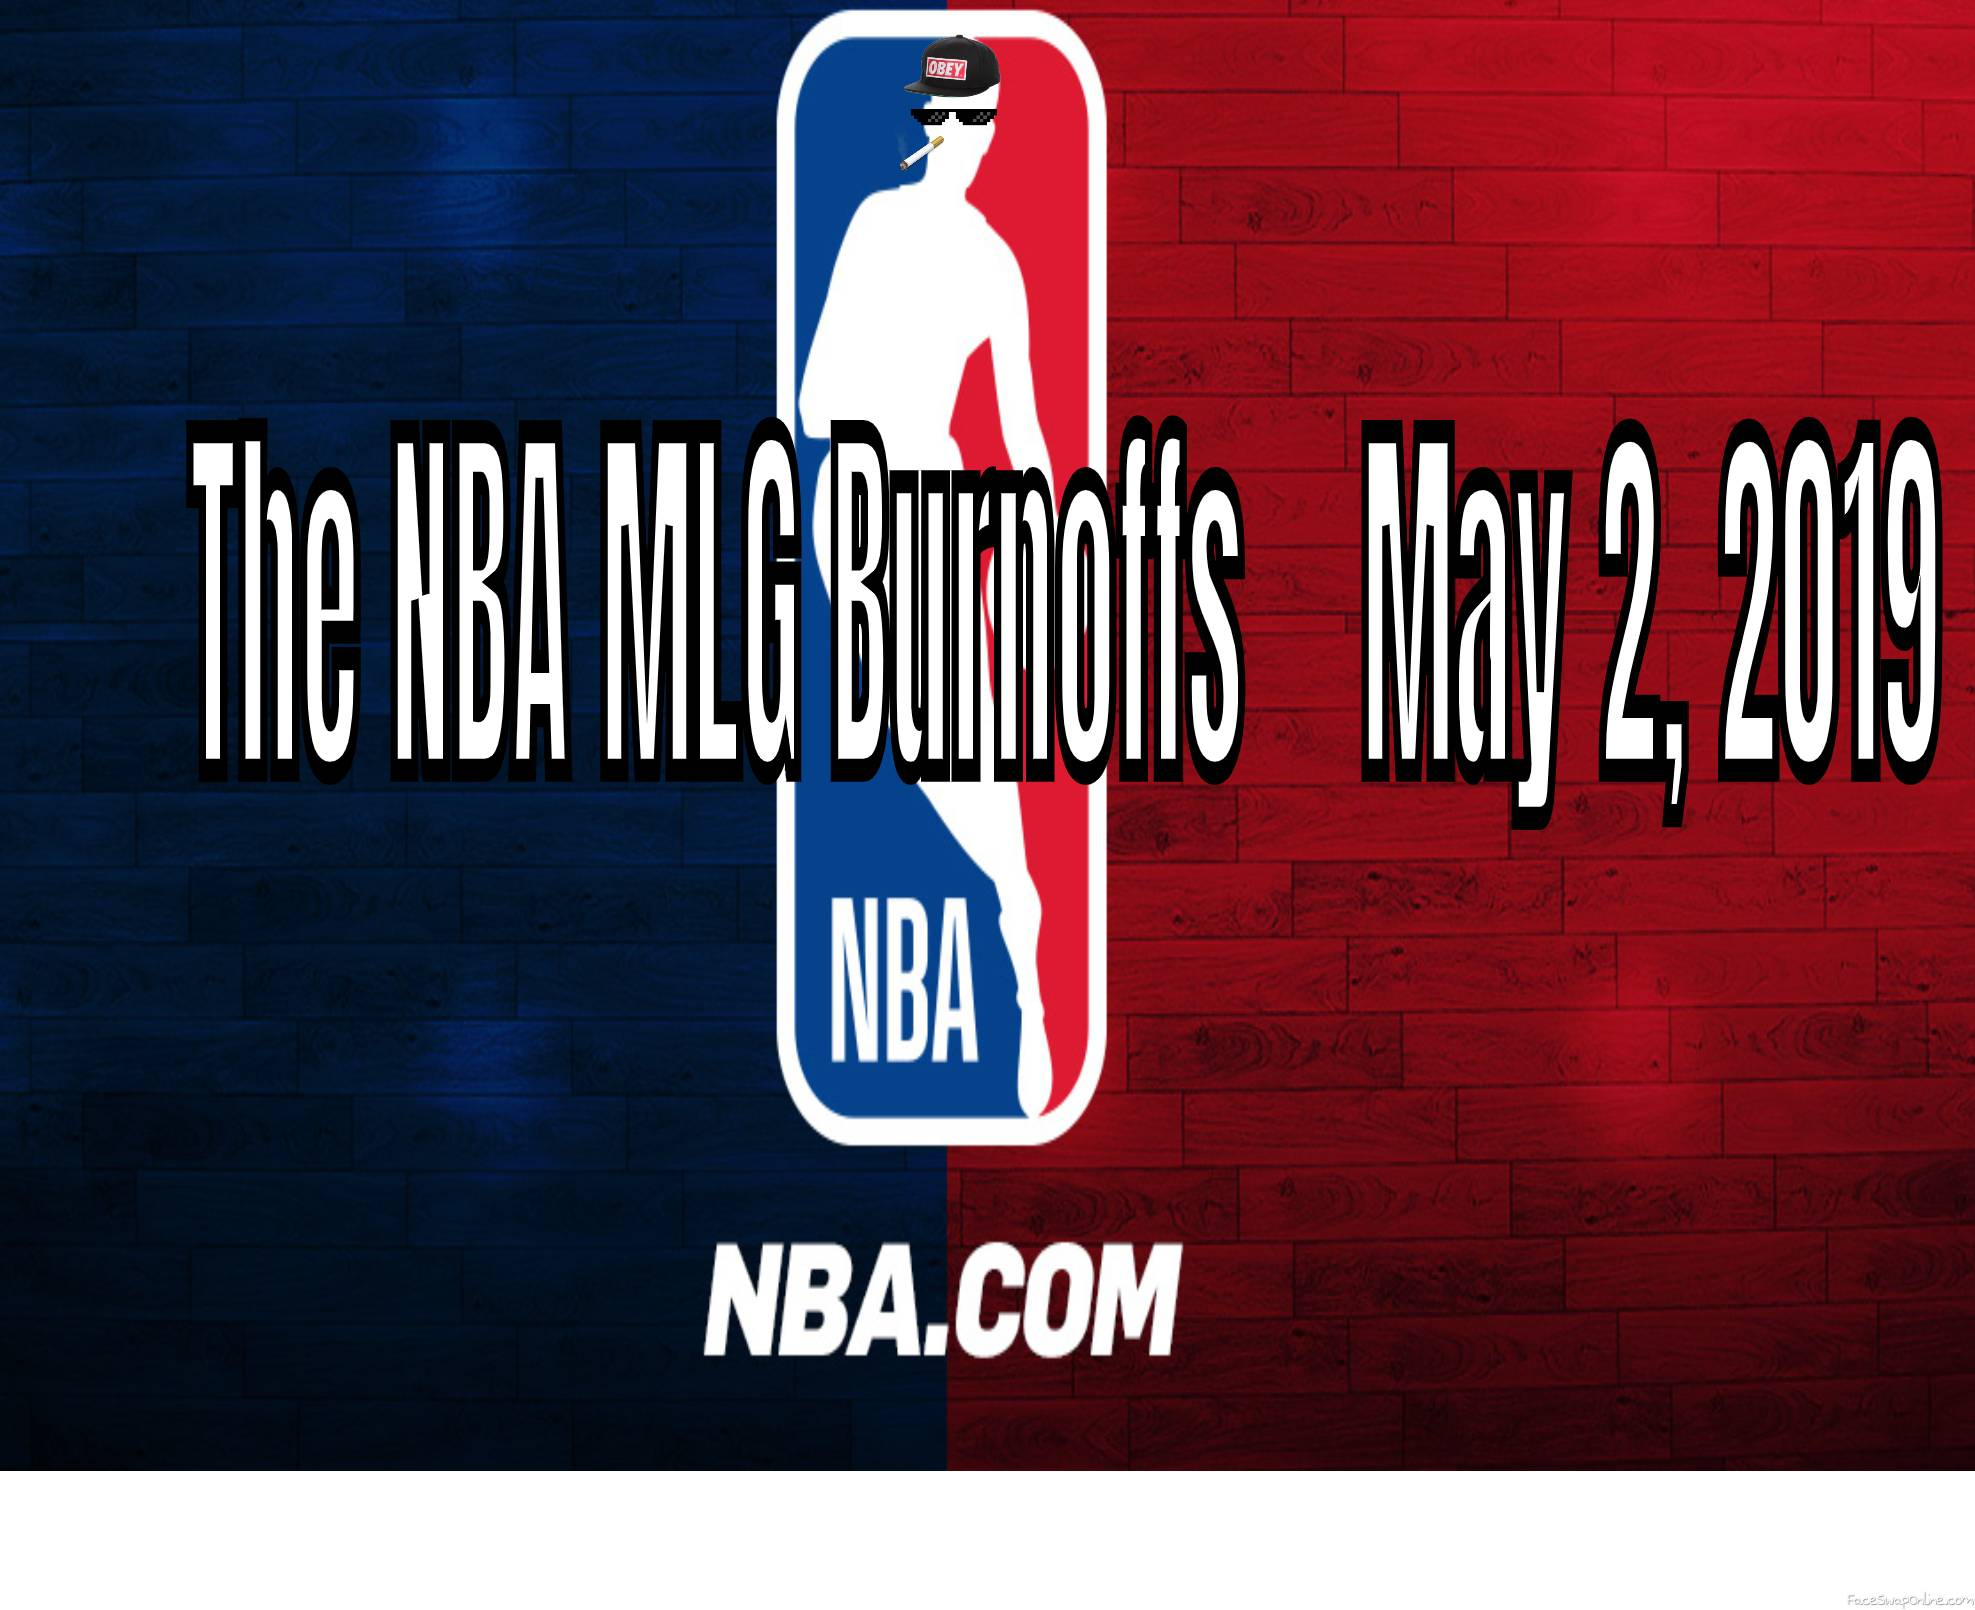 The NBA burnoffs (not real ;( )